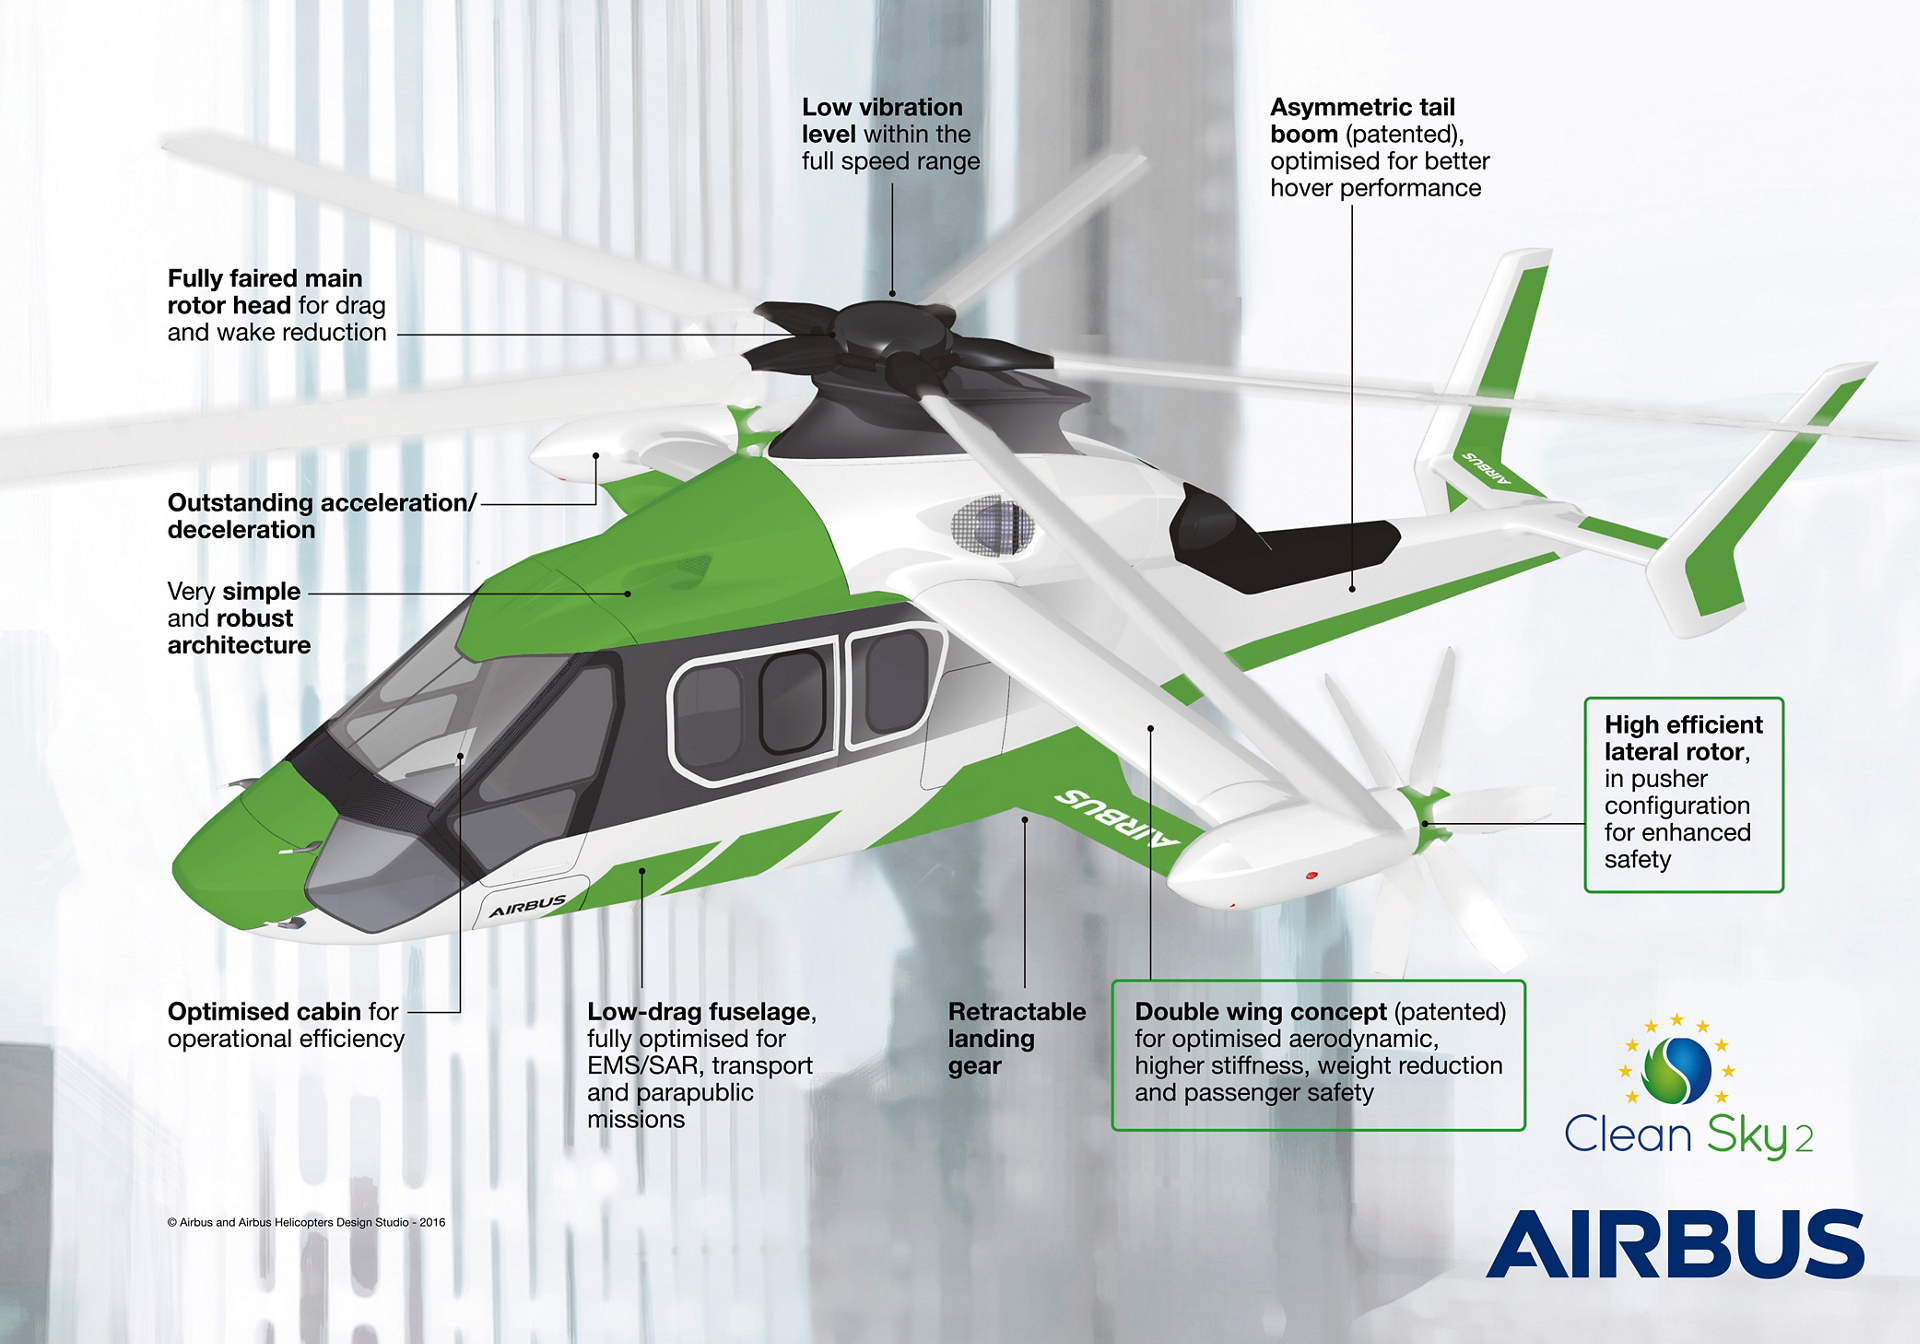 [2:18 PM] Gary McCabe     An infographic showing a wide range of information on Airbus' RACER high-speed demonstrator